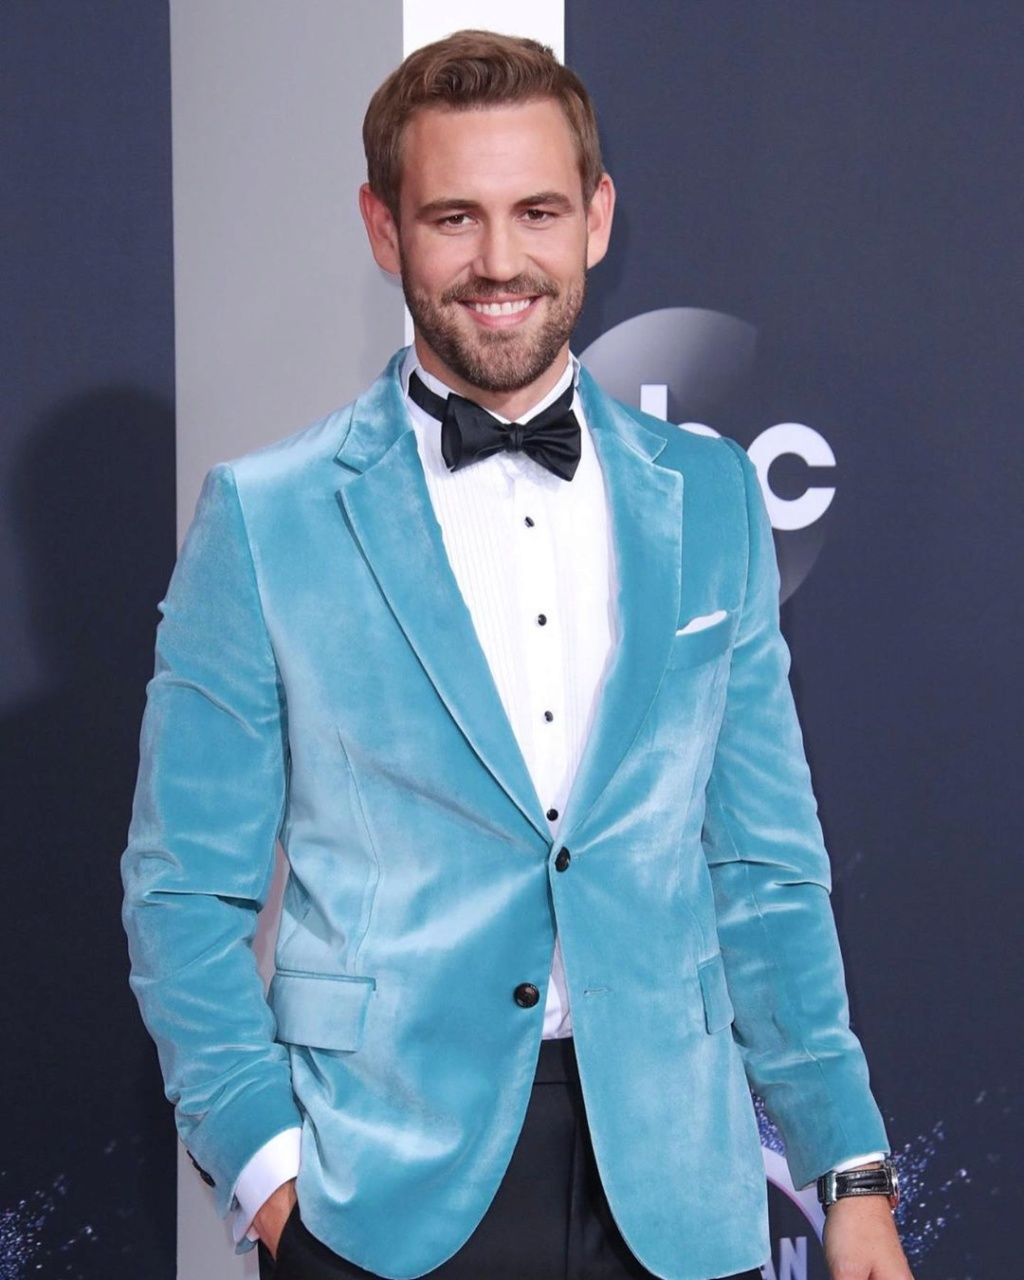 Nick Viall - Bachelor 21 - FAN Forum - Discussion #27 - Page 67 73226810